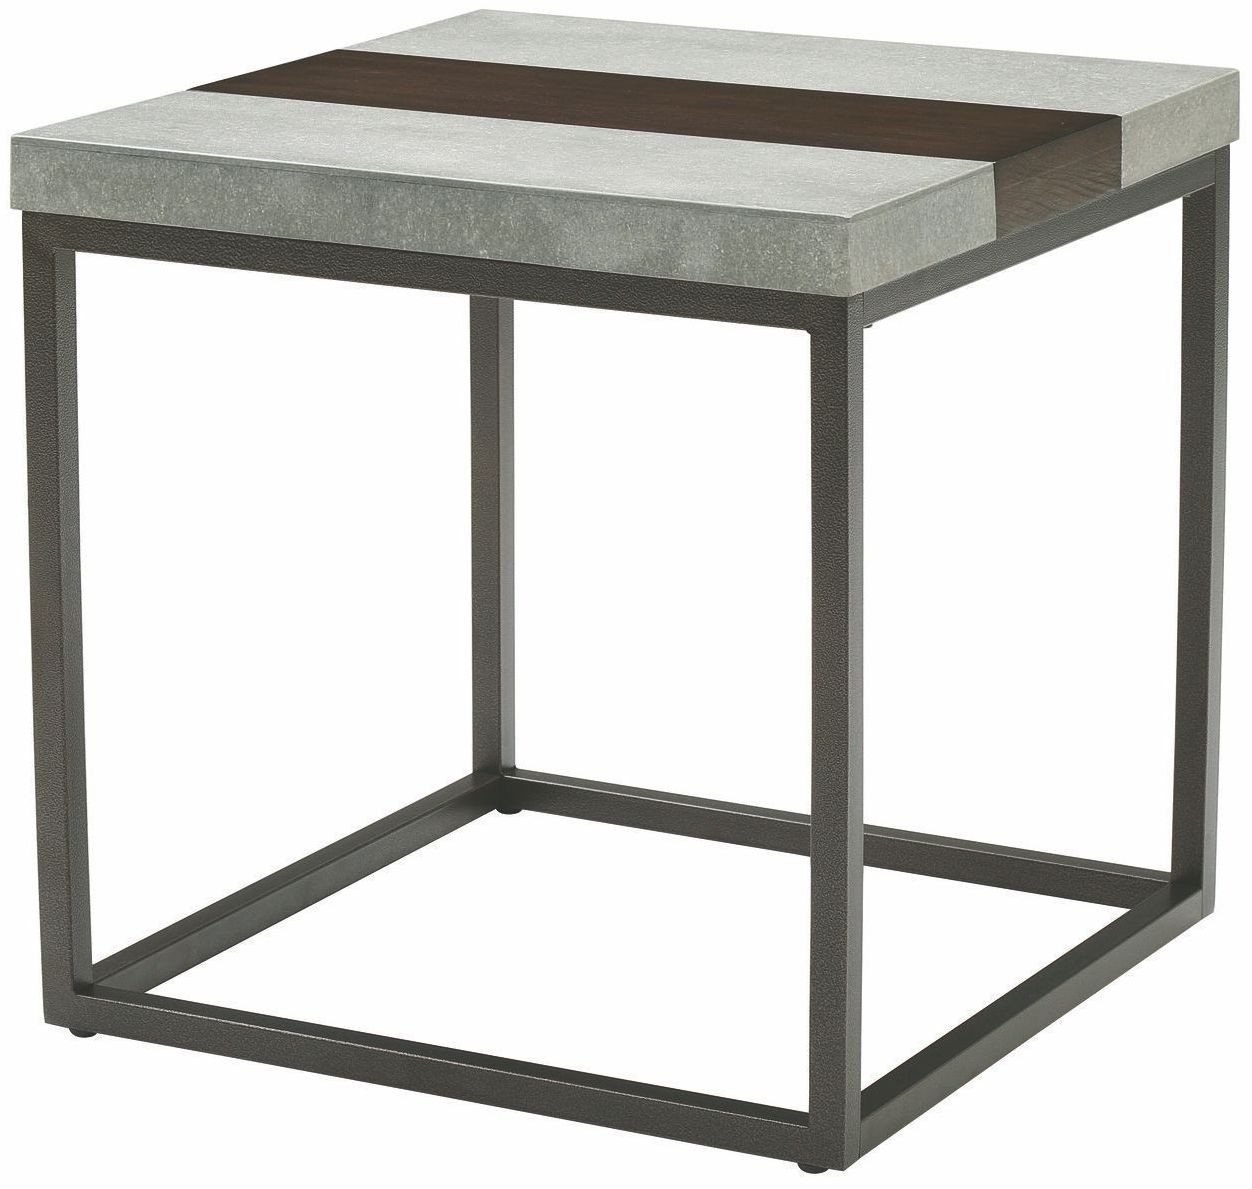 Stoneworks merlot natural stone end table from emerald for Environmental stoneworks pricing